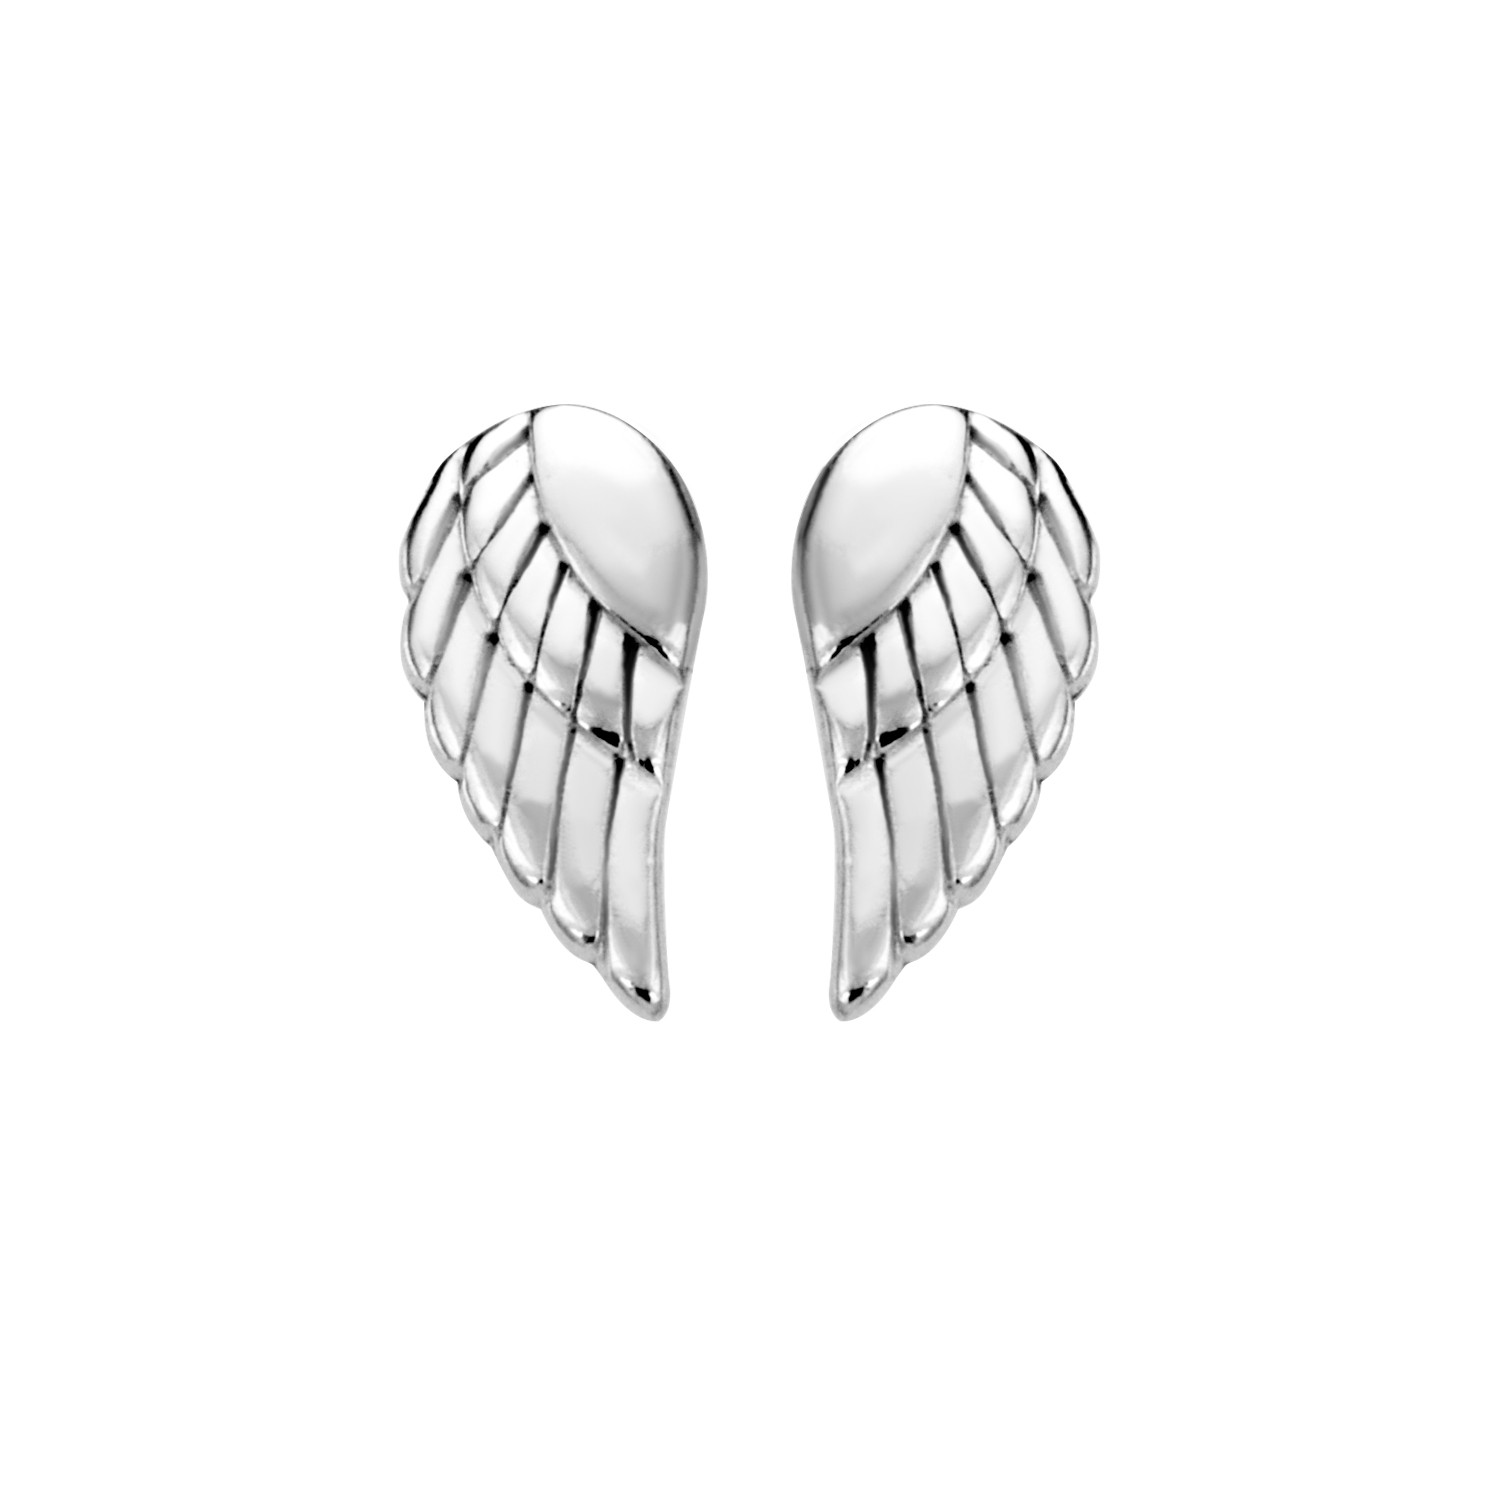 Description Details Reviews These Precious Sterling Silver Tiny Posh Angel Wing Earrings